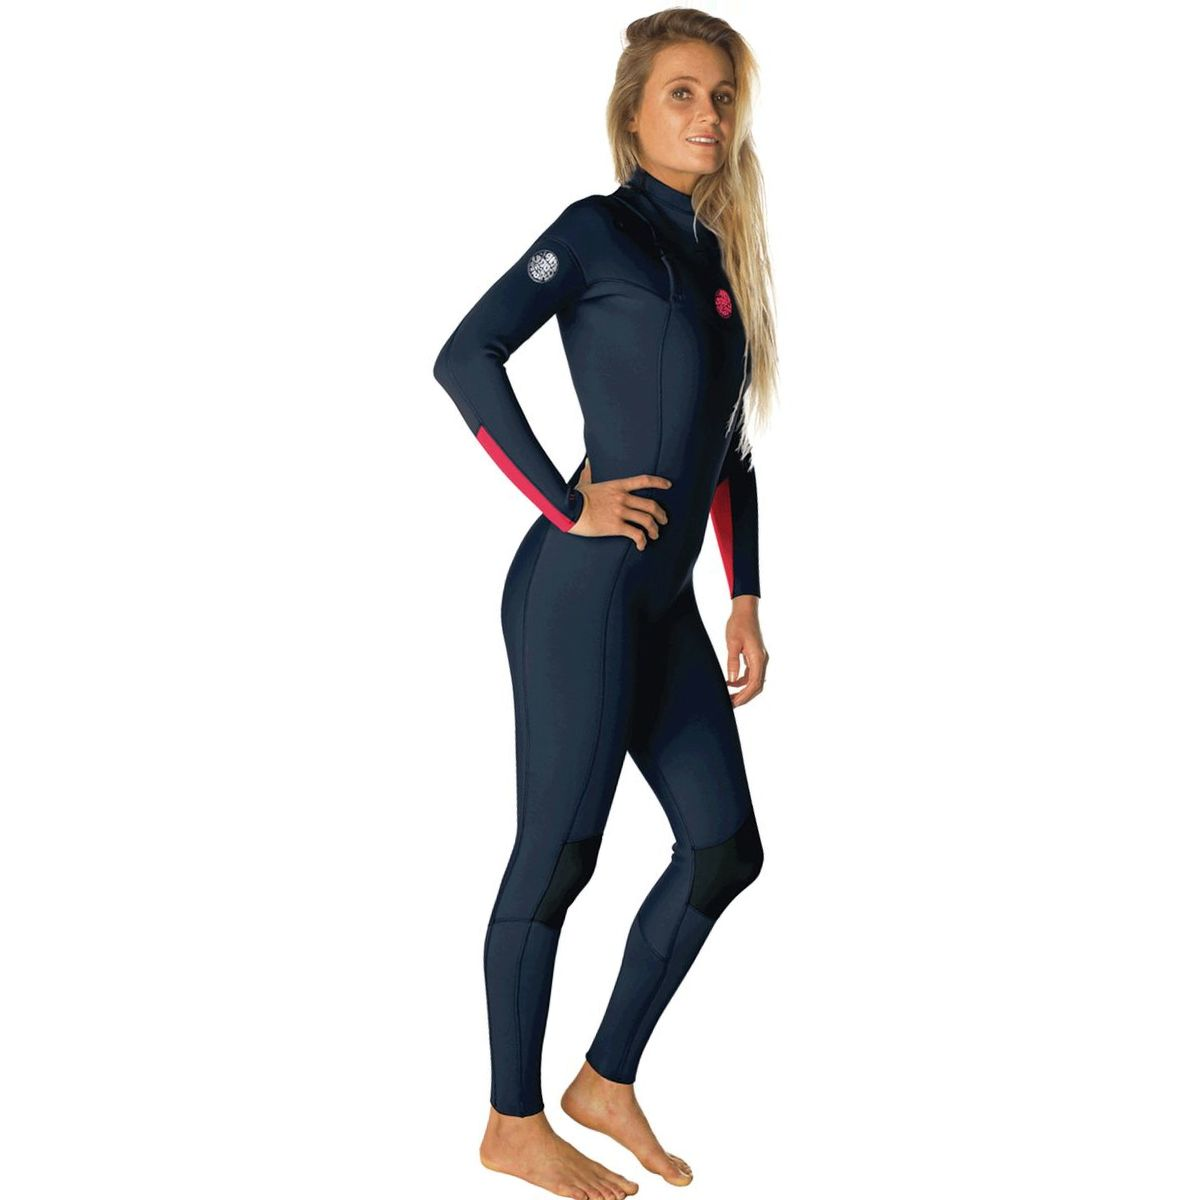 Rip Curl Dawn Patrol 3/2 Chest-Zip Full Wetsuit - Women's